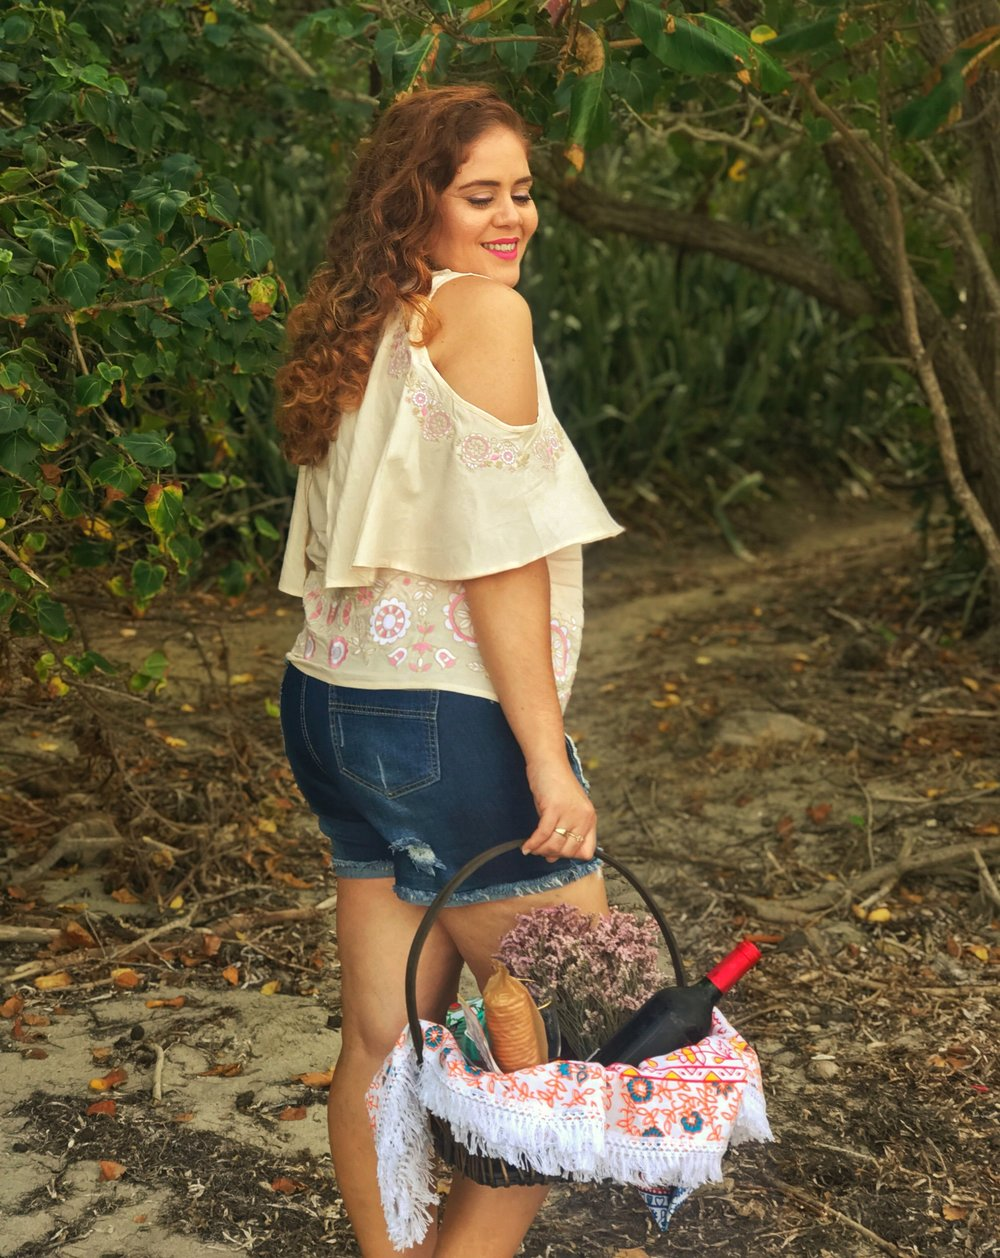 Embroidered Top in Sun Kiss  |  Mid Rise Short Jeans  |  Color Inspiration Round Beach Blanket